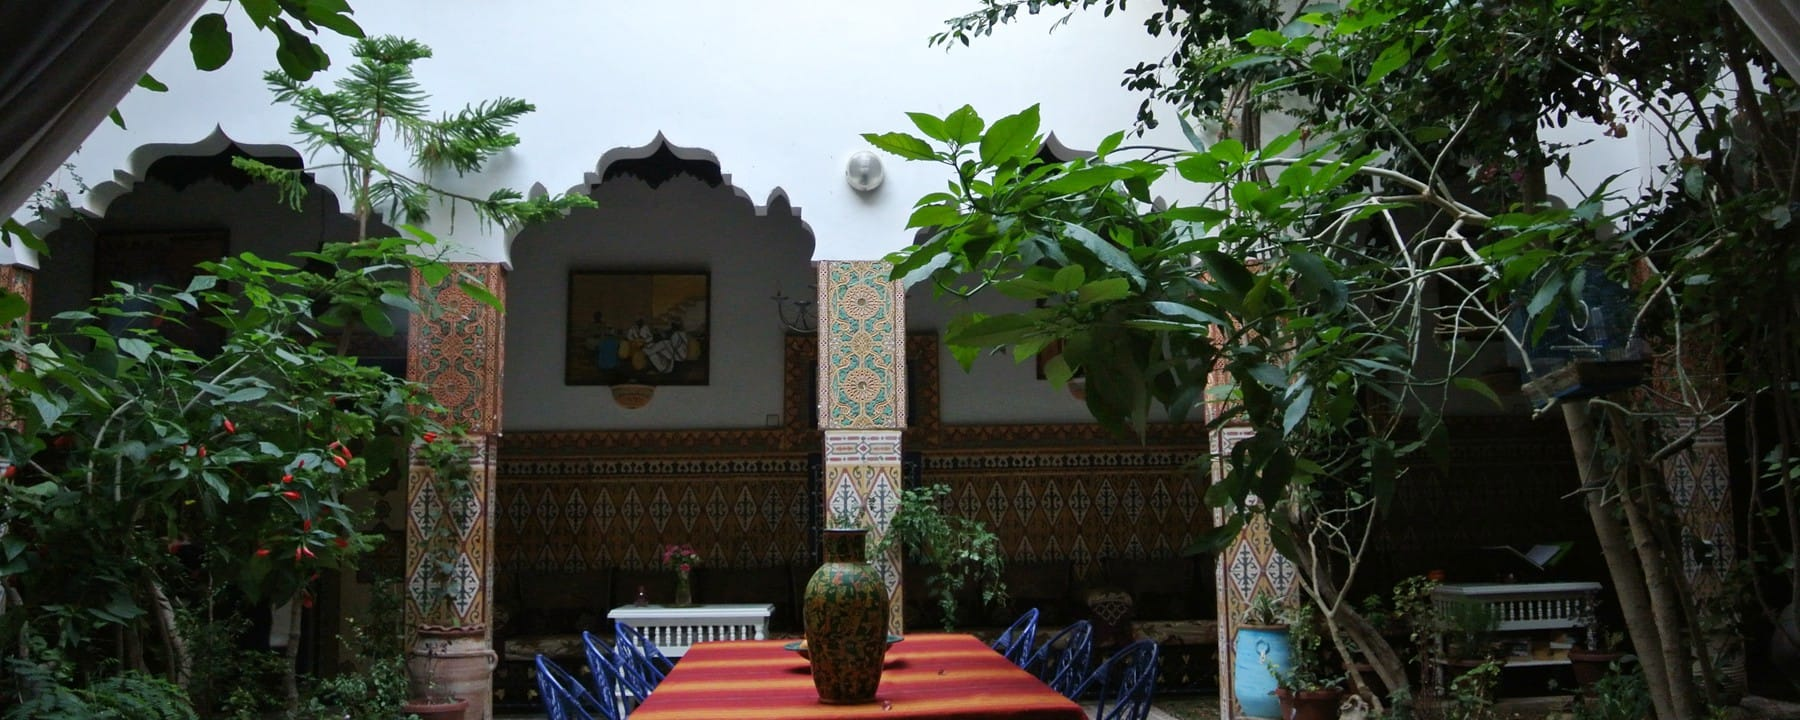 Morocco Riad Traditional Moroccan house with garden_Source NOSADE